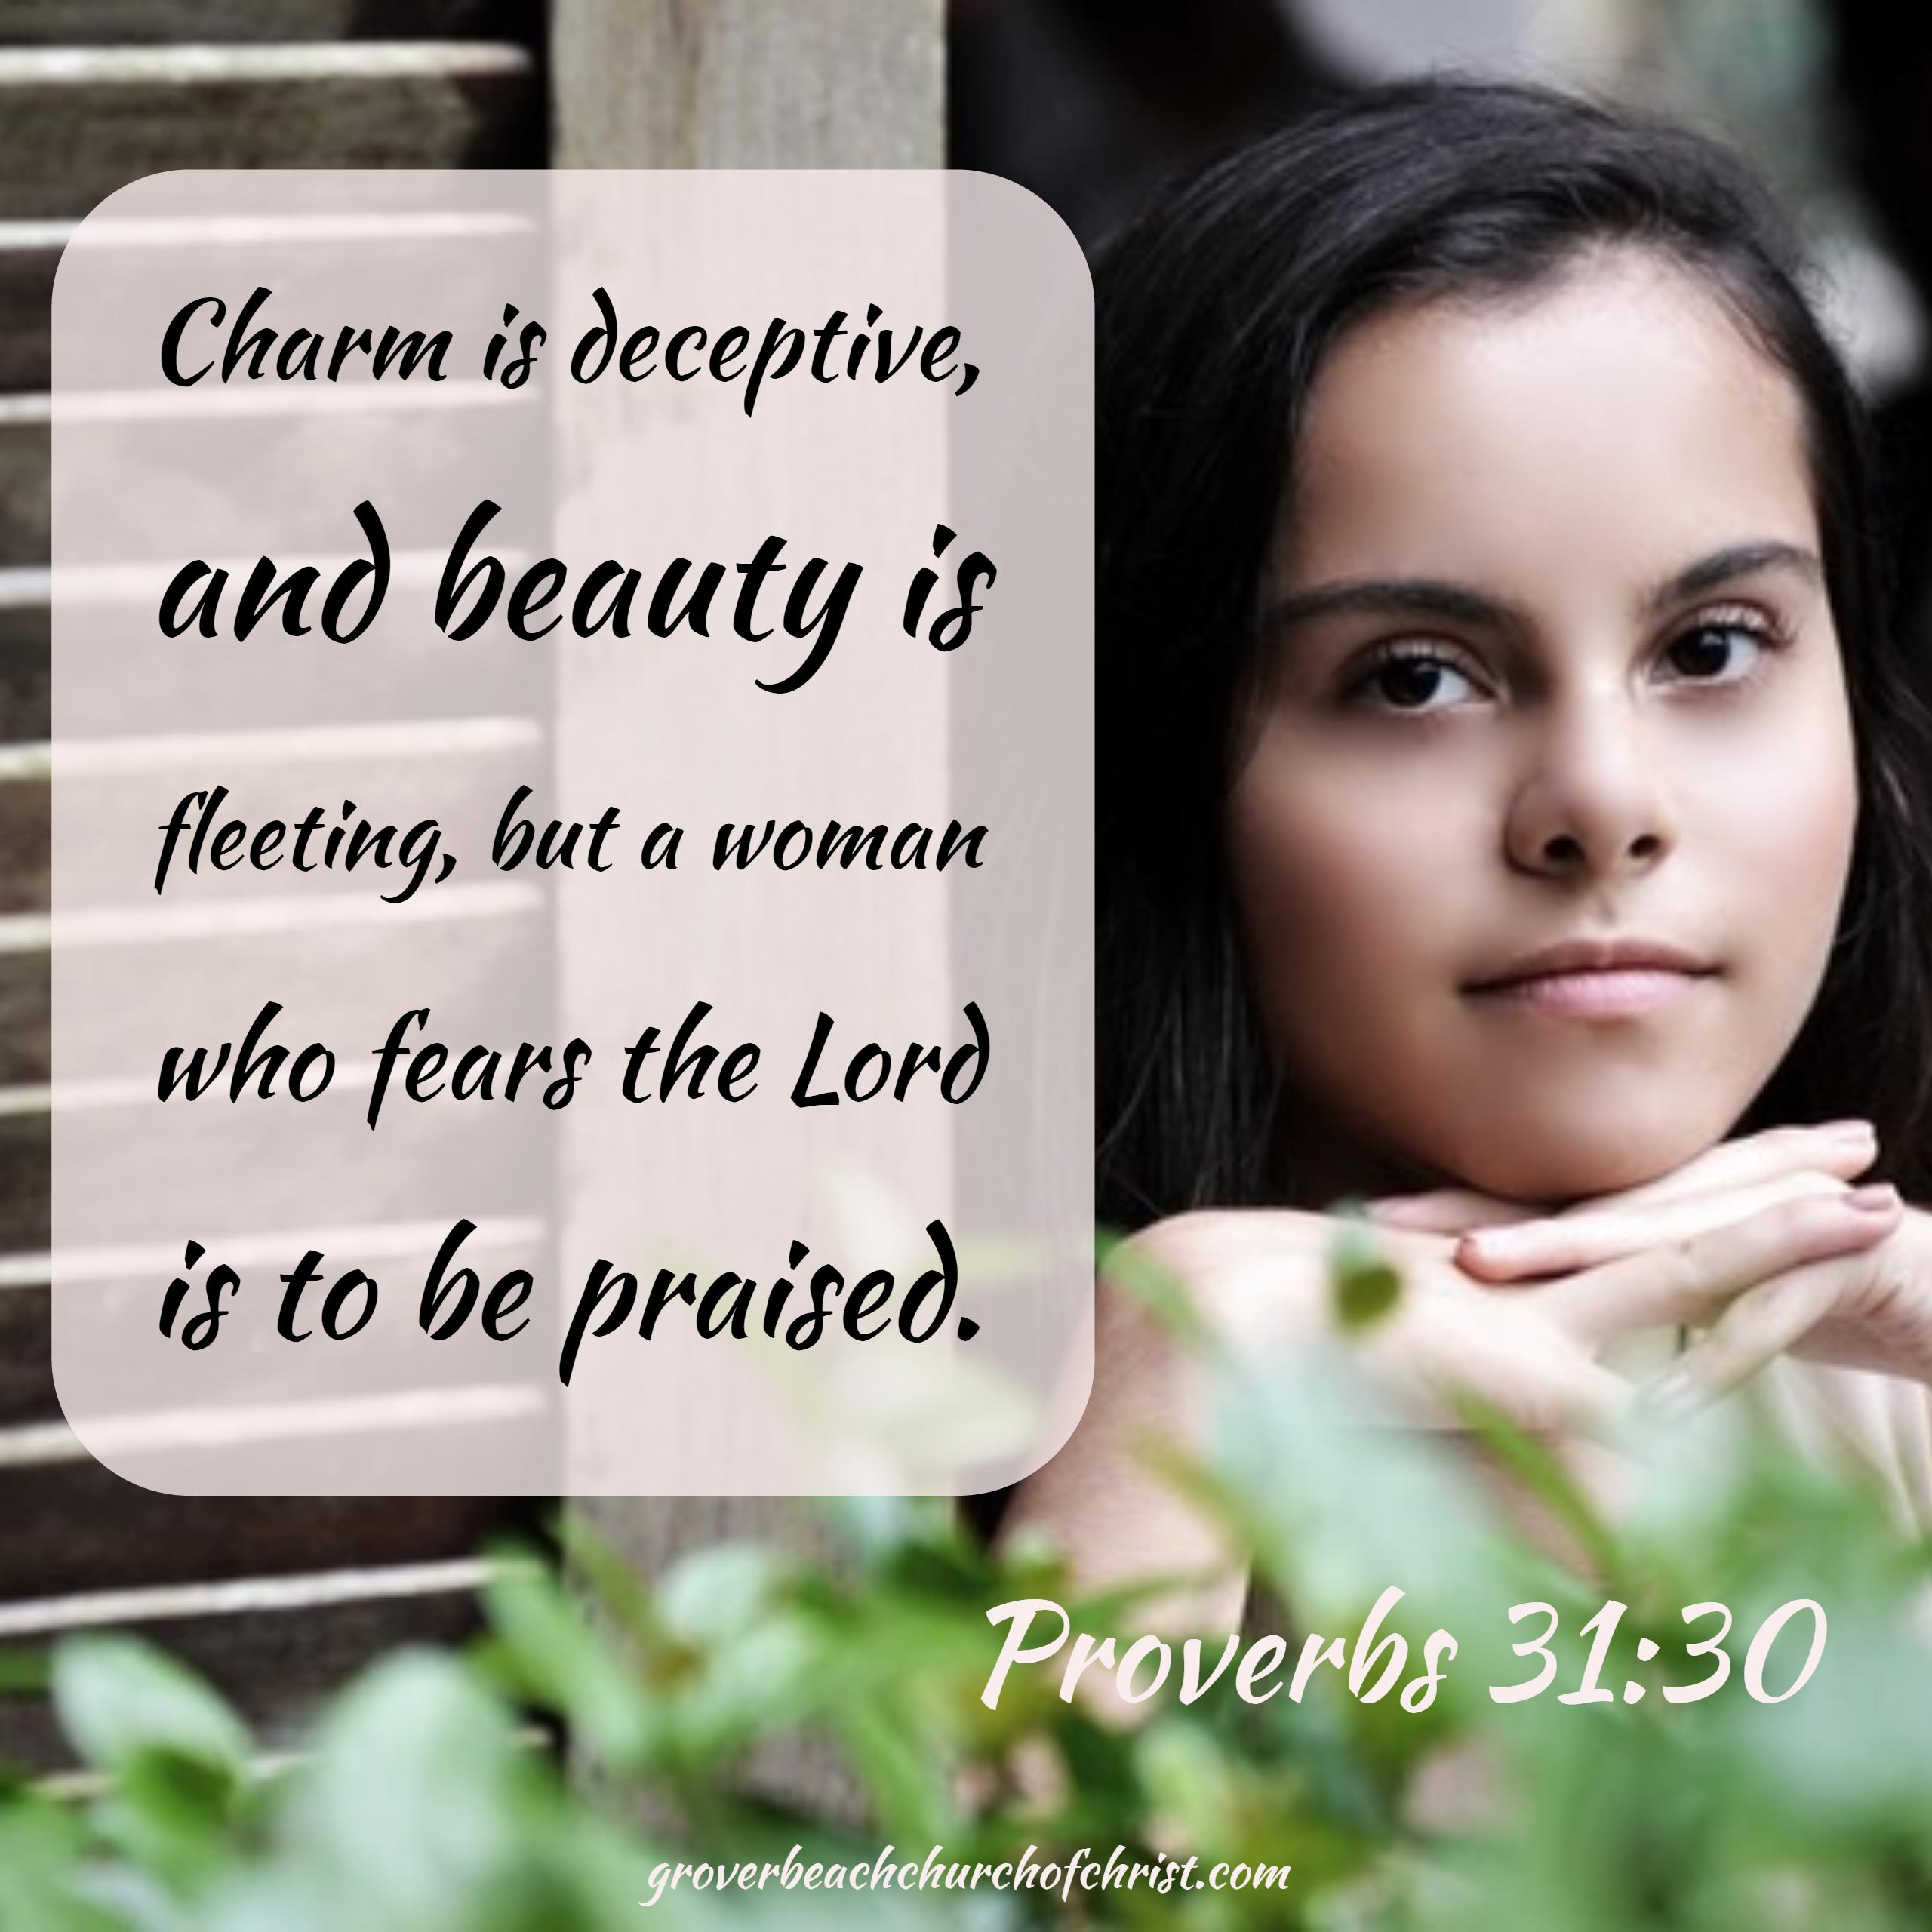 Proverbs 31-30 Charm is deceptive